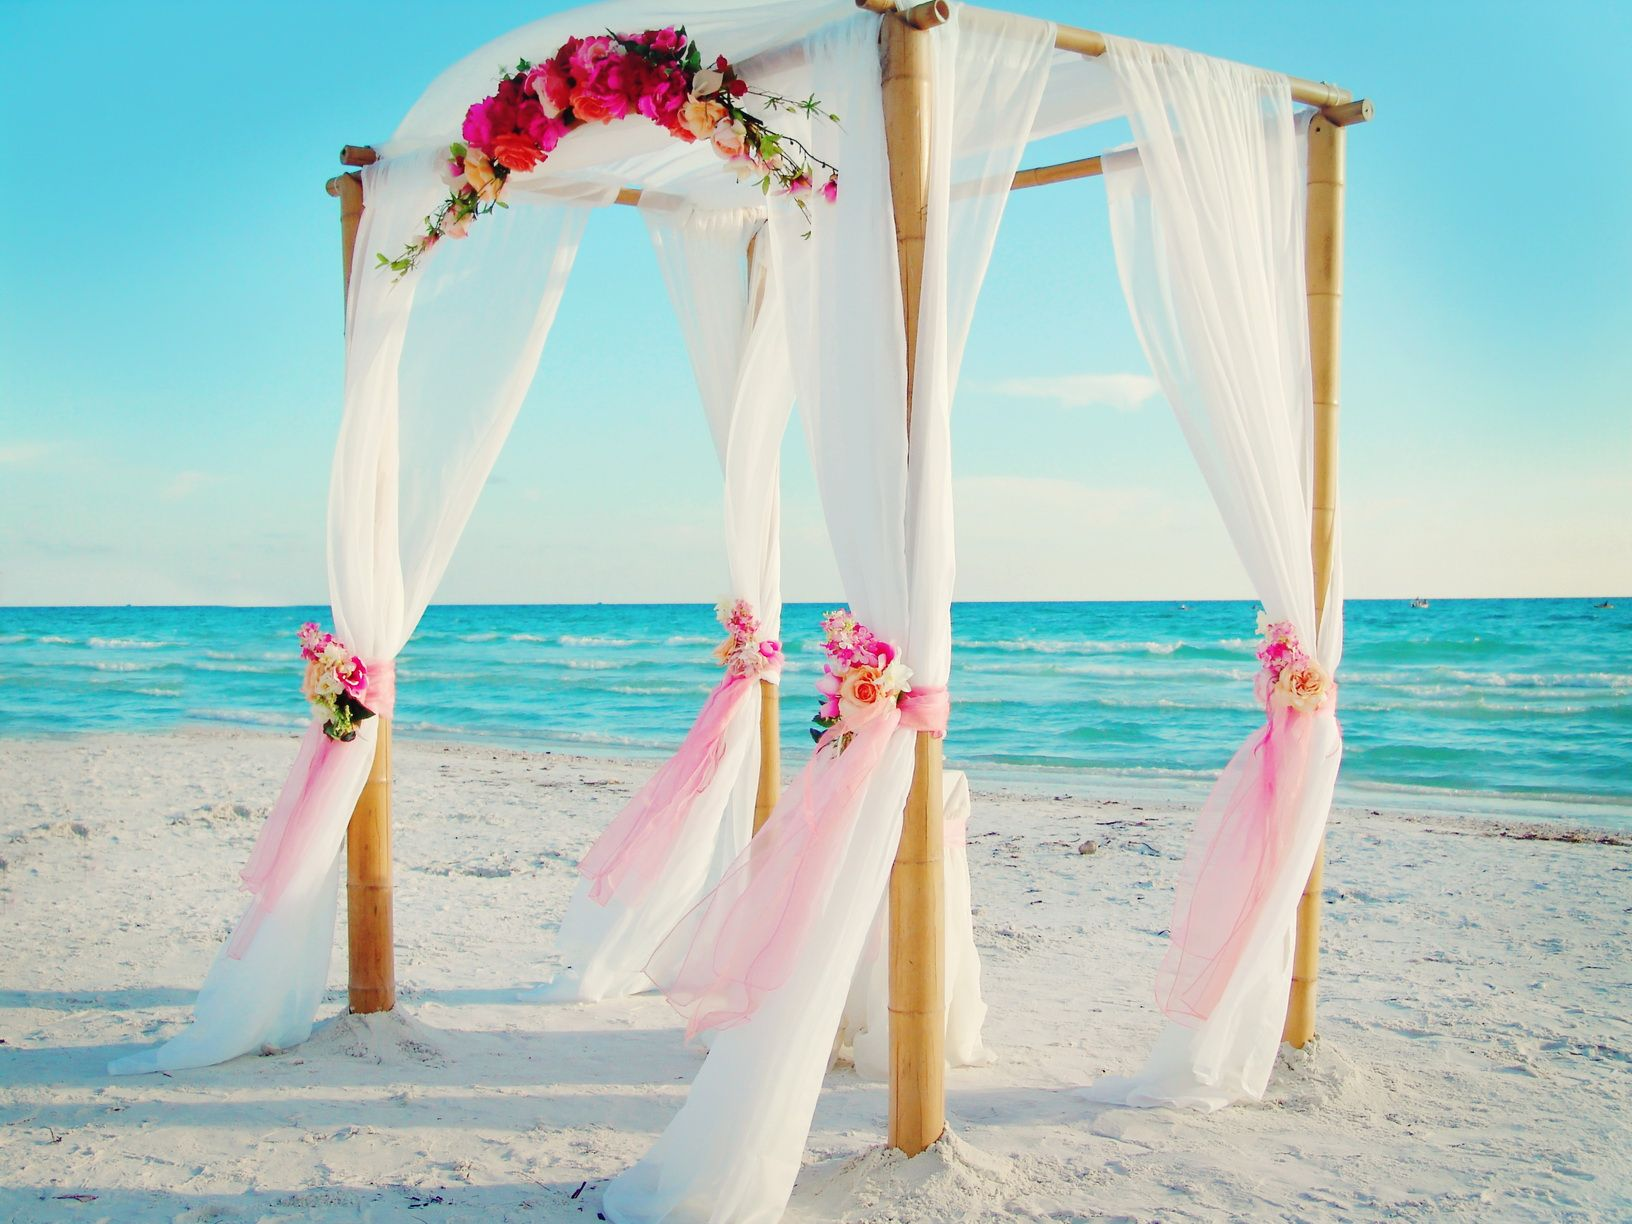 Beach Wedding In Florida S West Coast Complete Package Including Bamboo Arbor Chairs Photographer Officiant And Musician